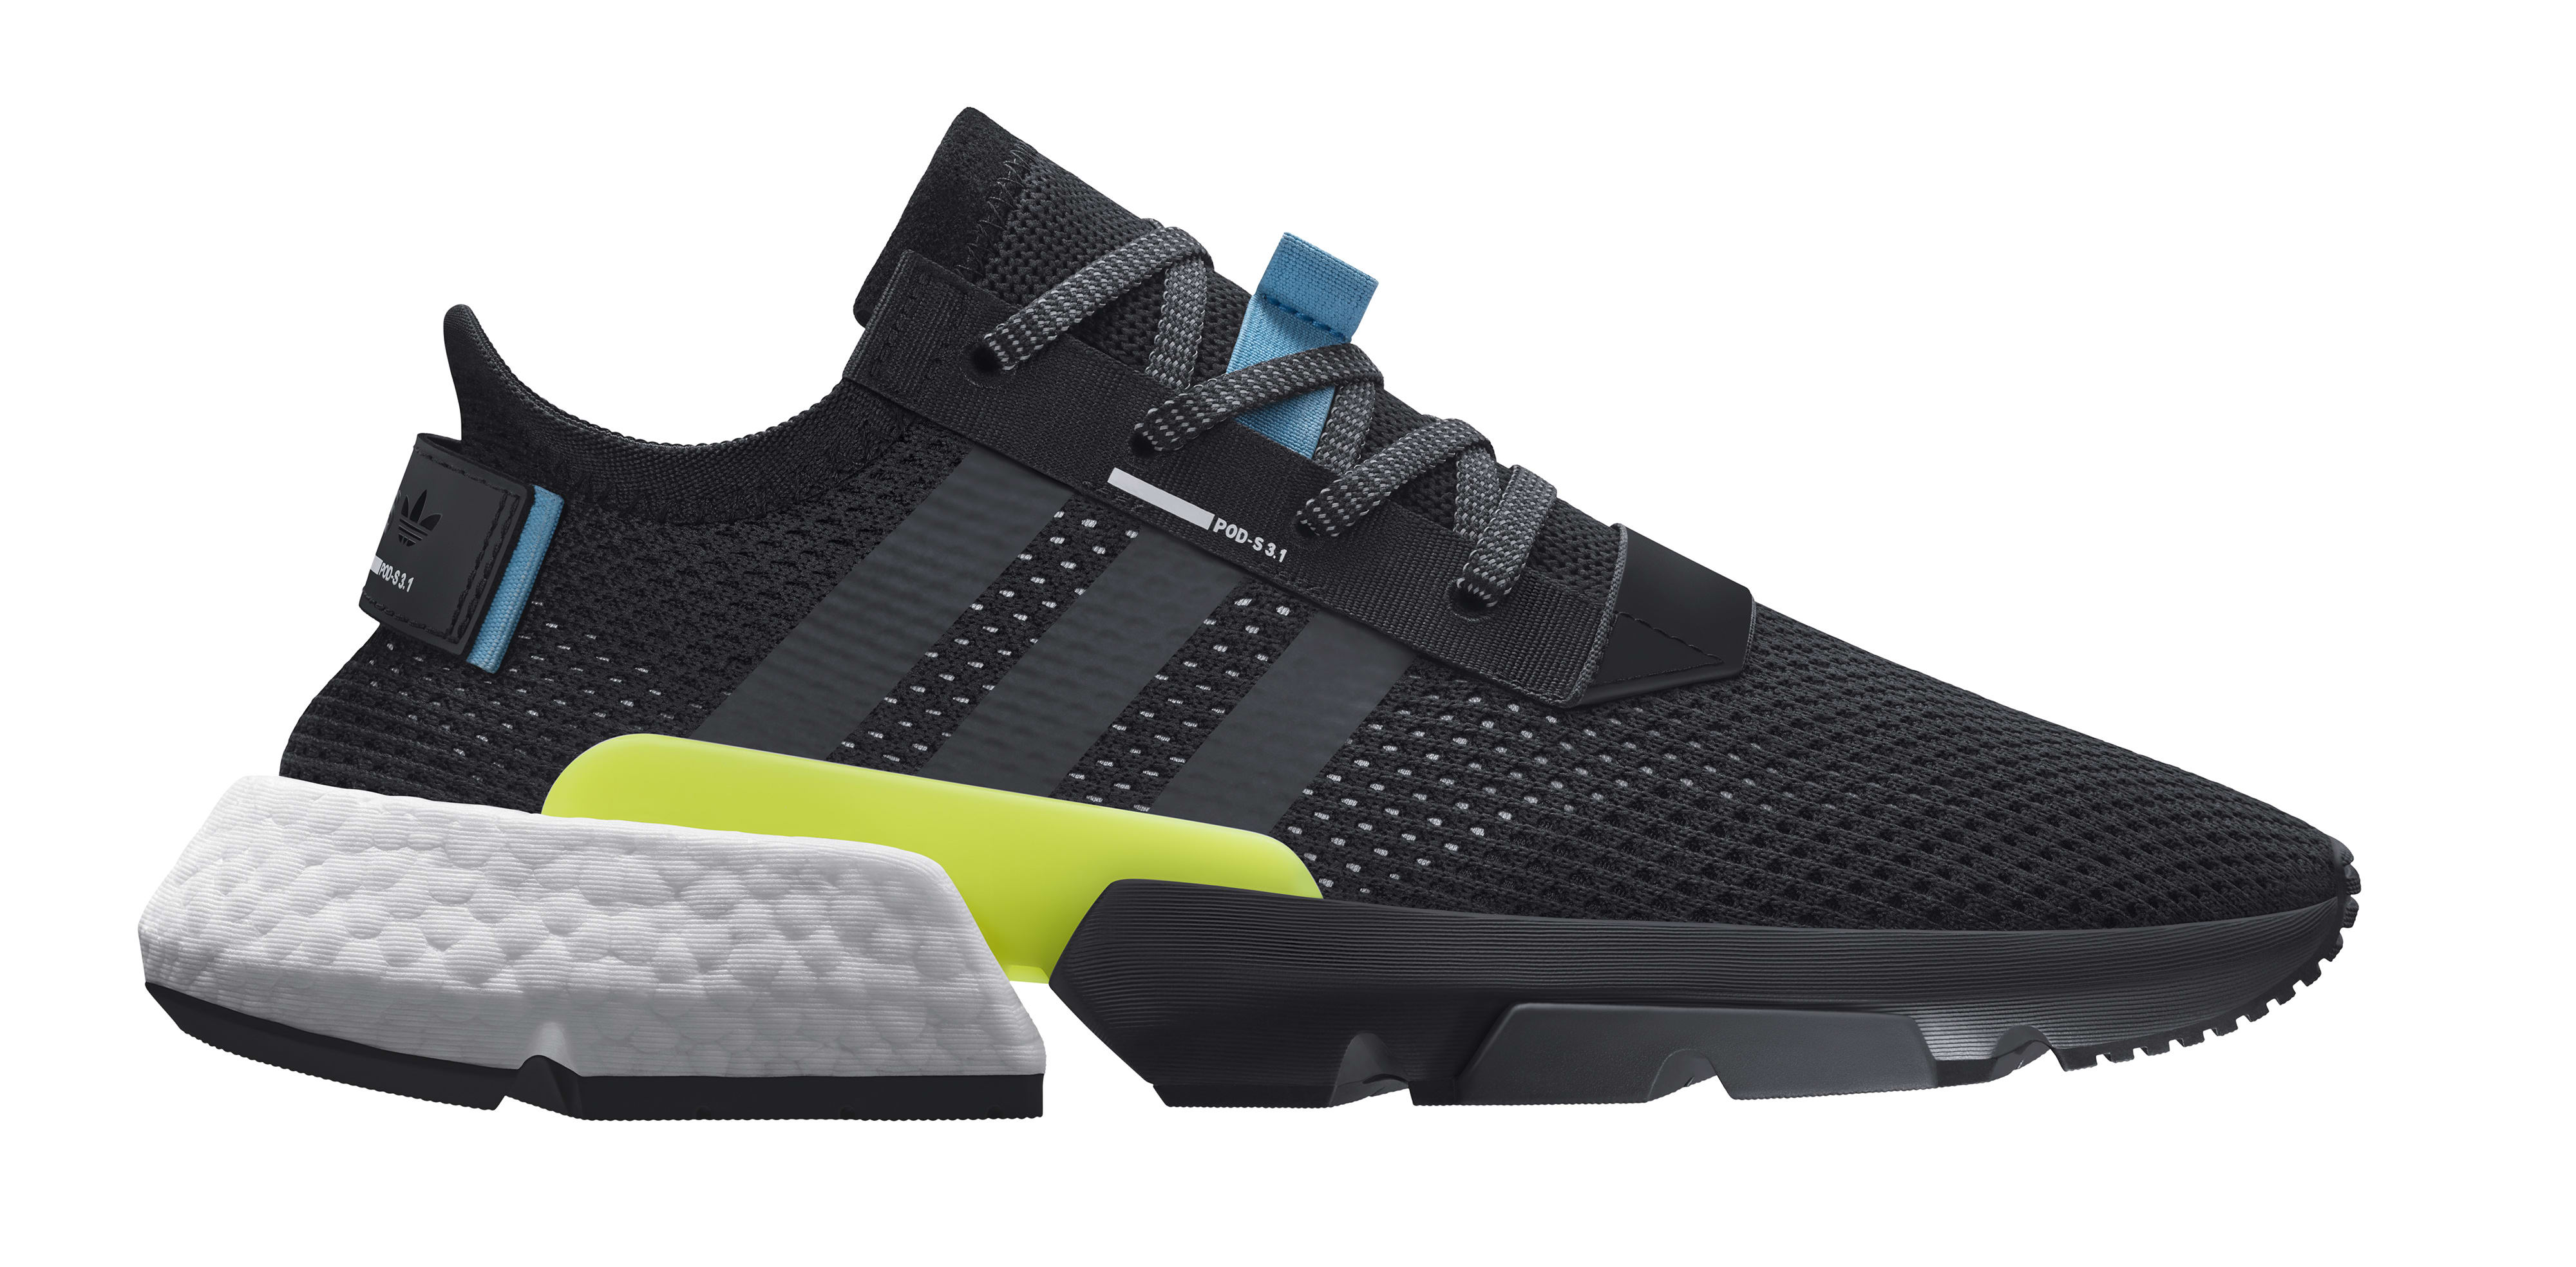 Adidas P.O.D. System AQ1059 (Lateral)